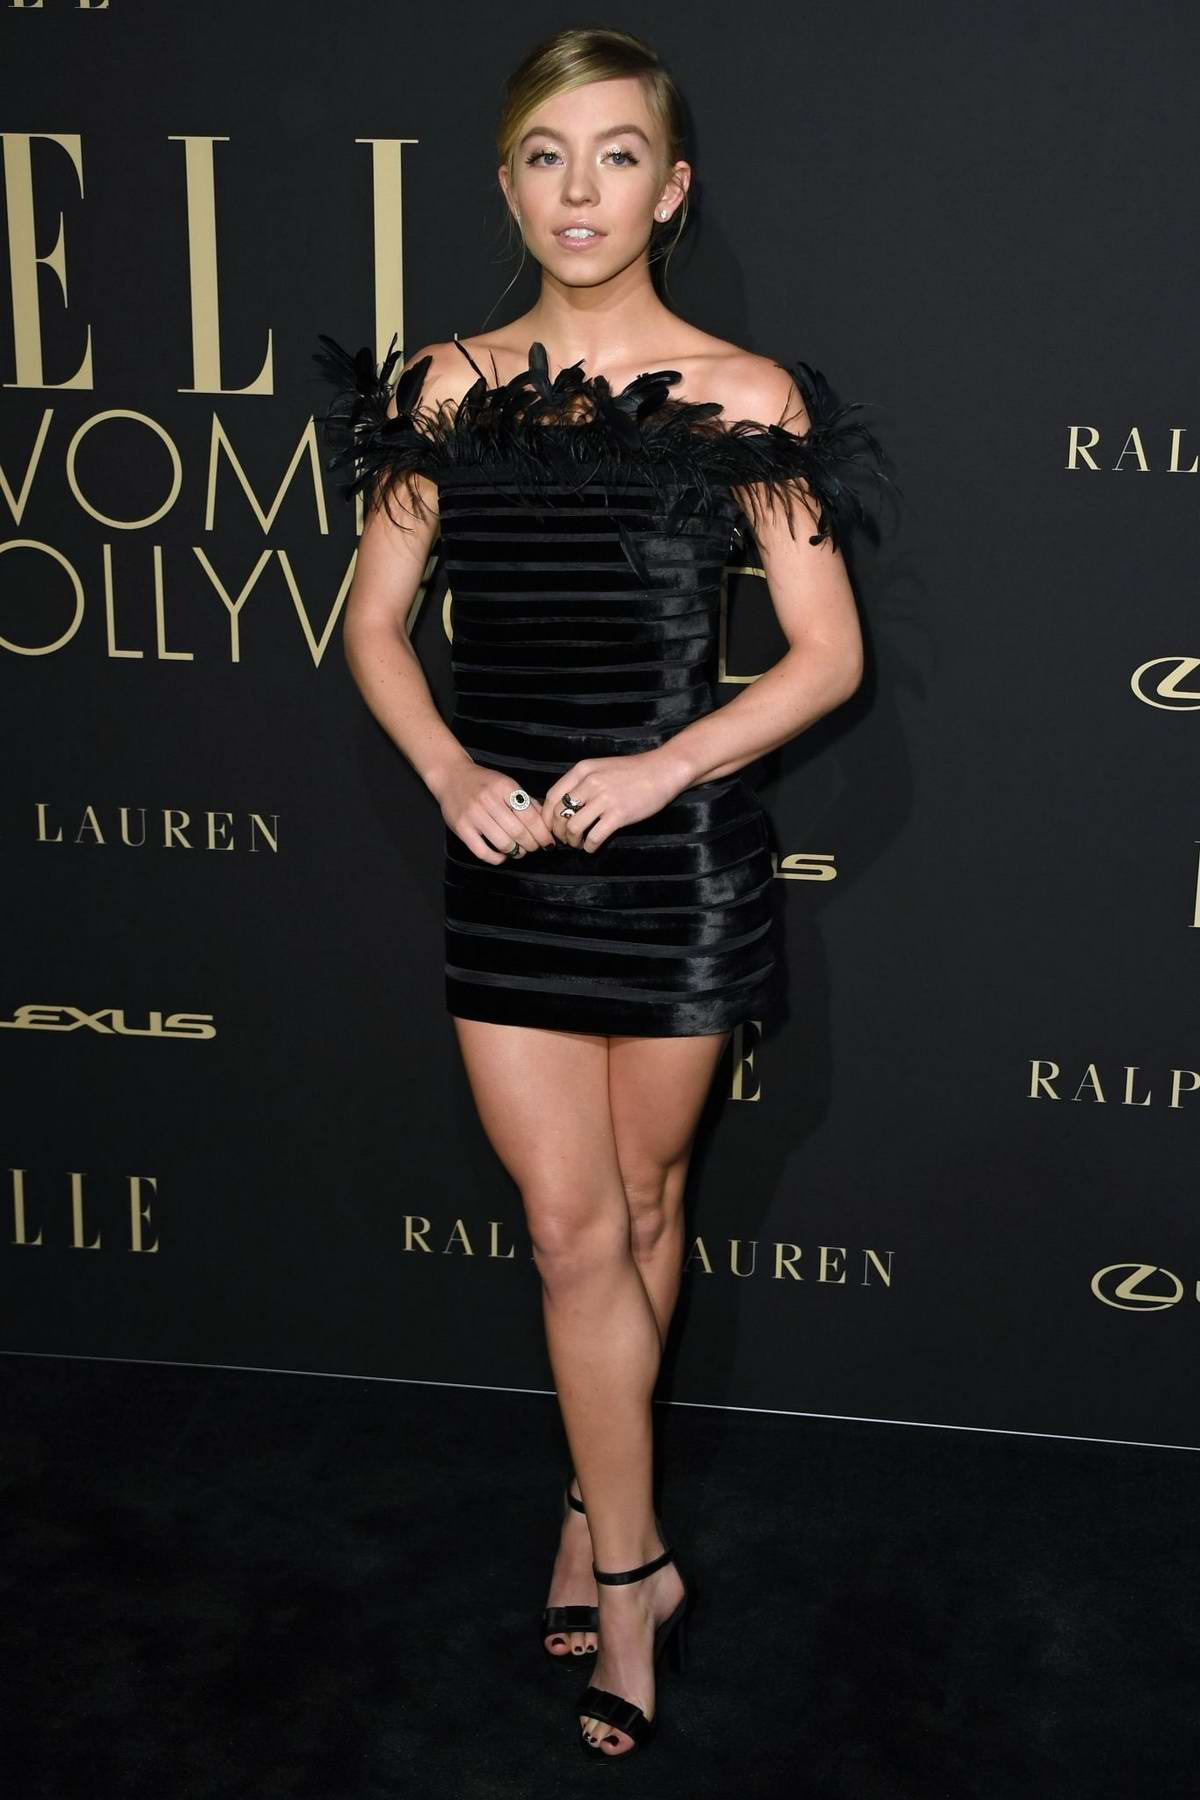 Sydney Sweeney attends ELLE's 26th Annual Women In Hollywood Celebration at The Four Seasons Hotel in Beverly Hills, California